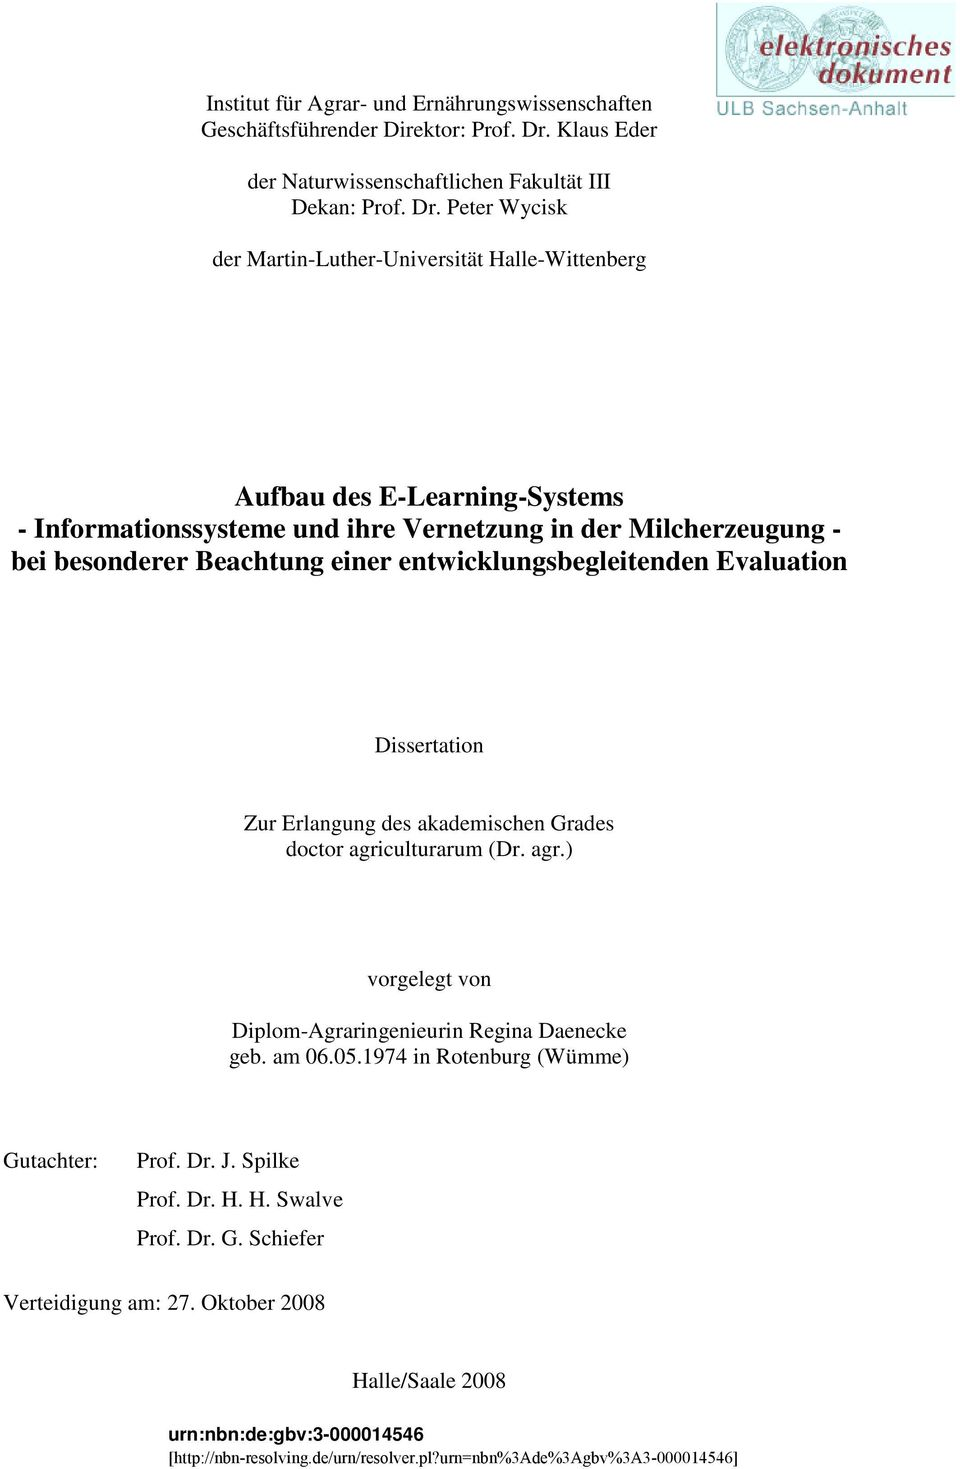 Peter Wycisk der Martin-Luther-Universität Halle-Wittenberg Aufbau des E-Learning-Systems - Informationssysteme und ihre Vernetzung in der Milcherzeugung - bei besonderer Beachtung einer